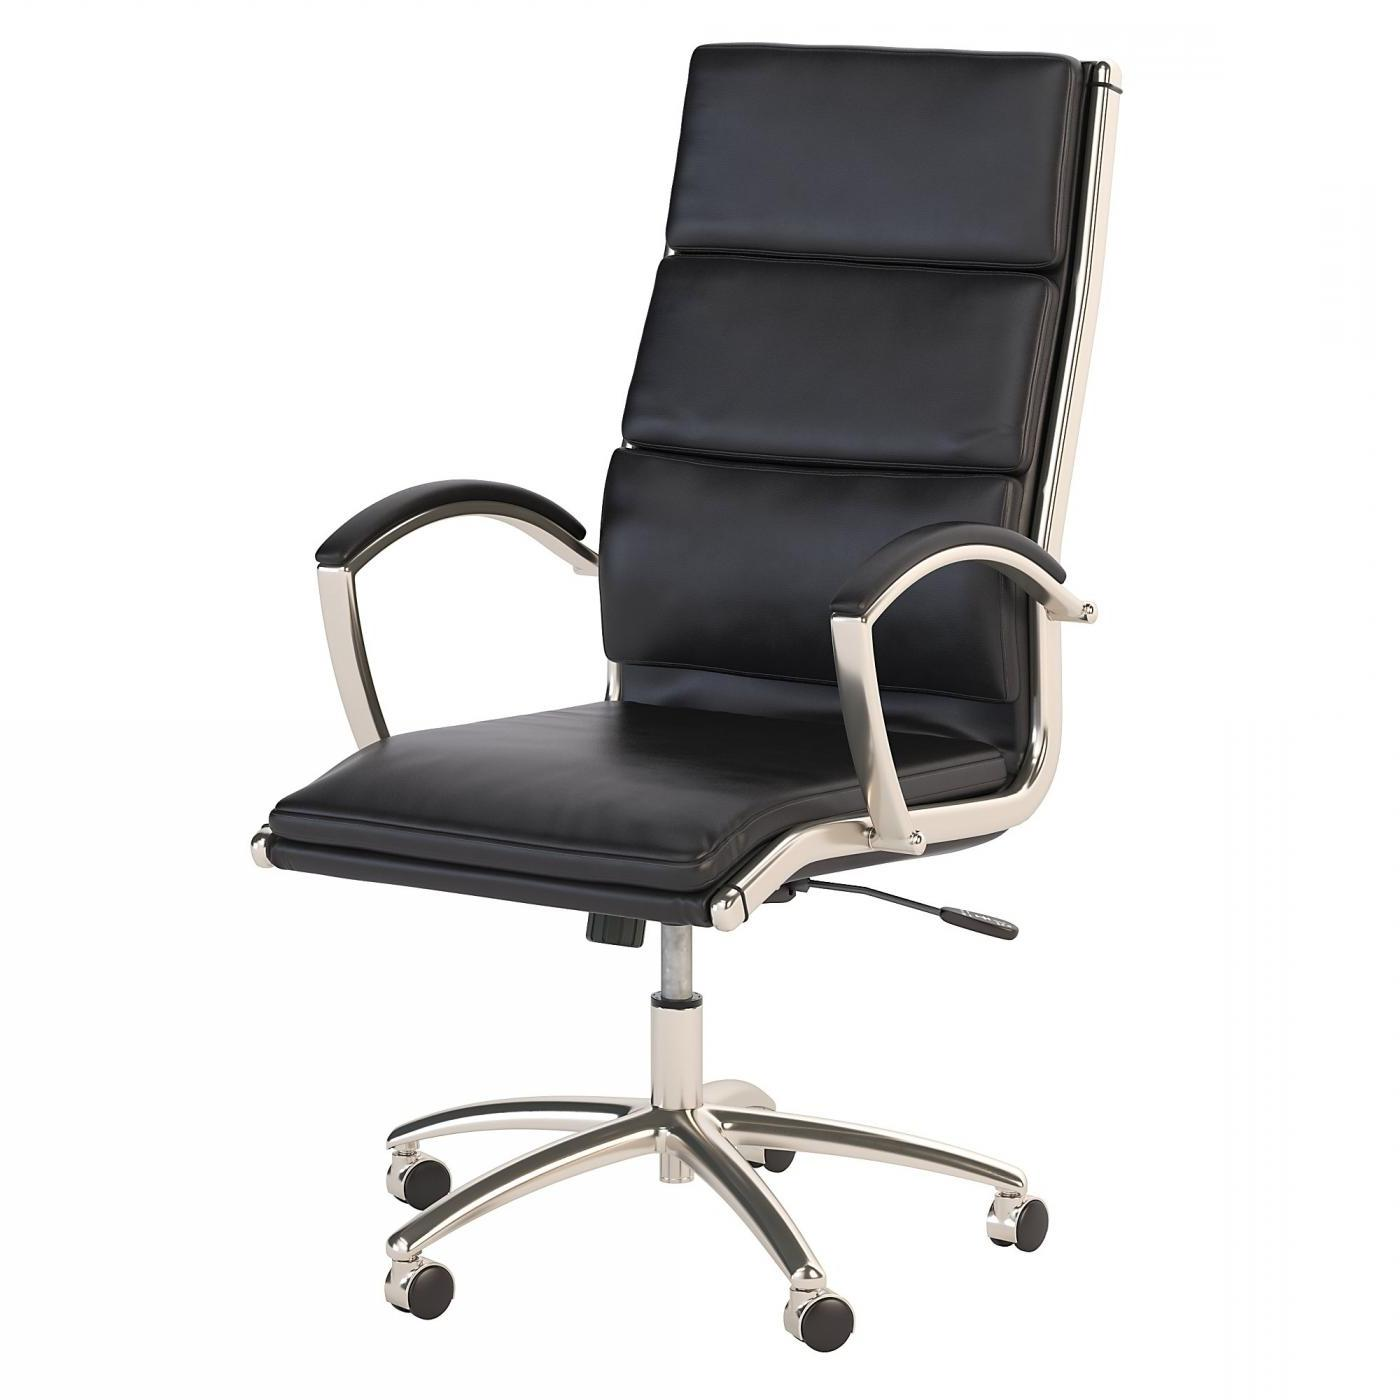 BUSH BUSINESS FURNITURE MODELO HIGH BACK LEATHER EXECUTIVE OFFICE CHAIR #EH-CH1701BLL-03. FREE SHIPPING: